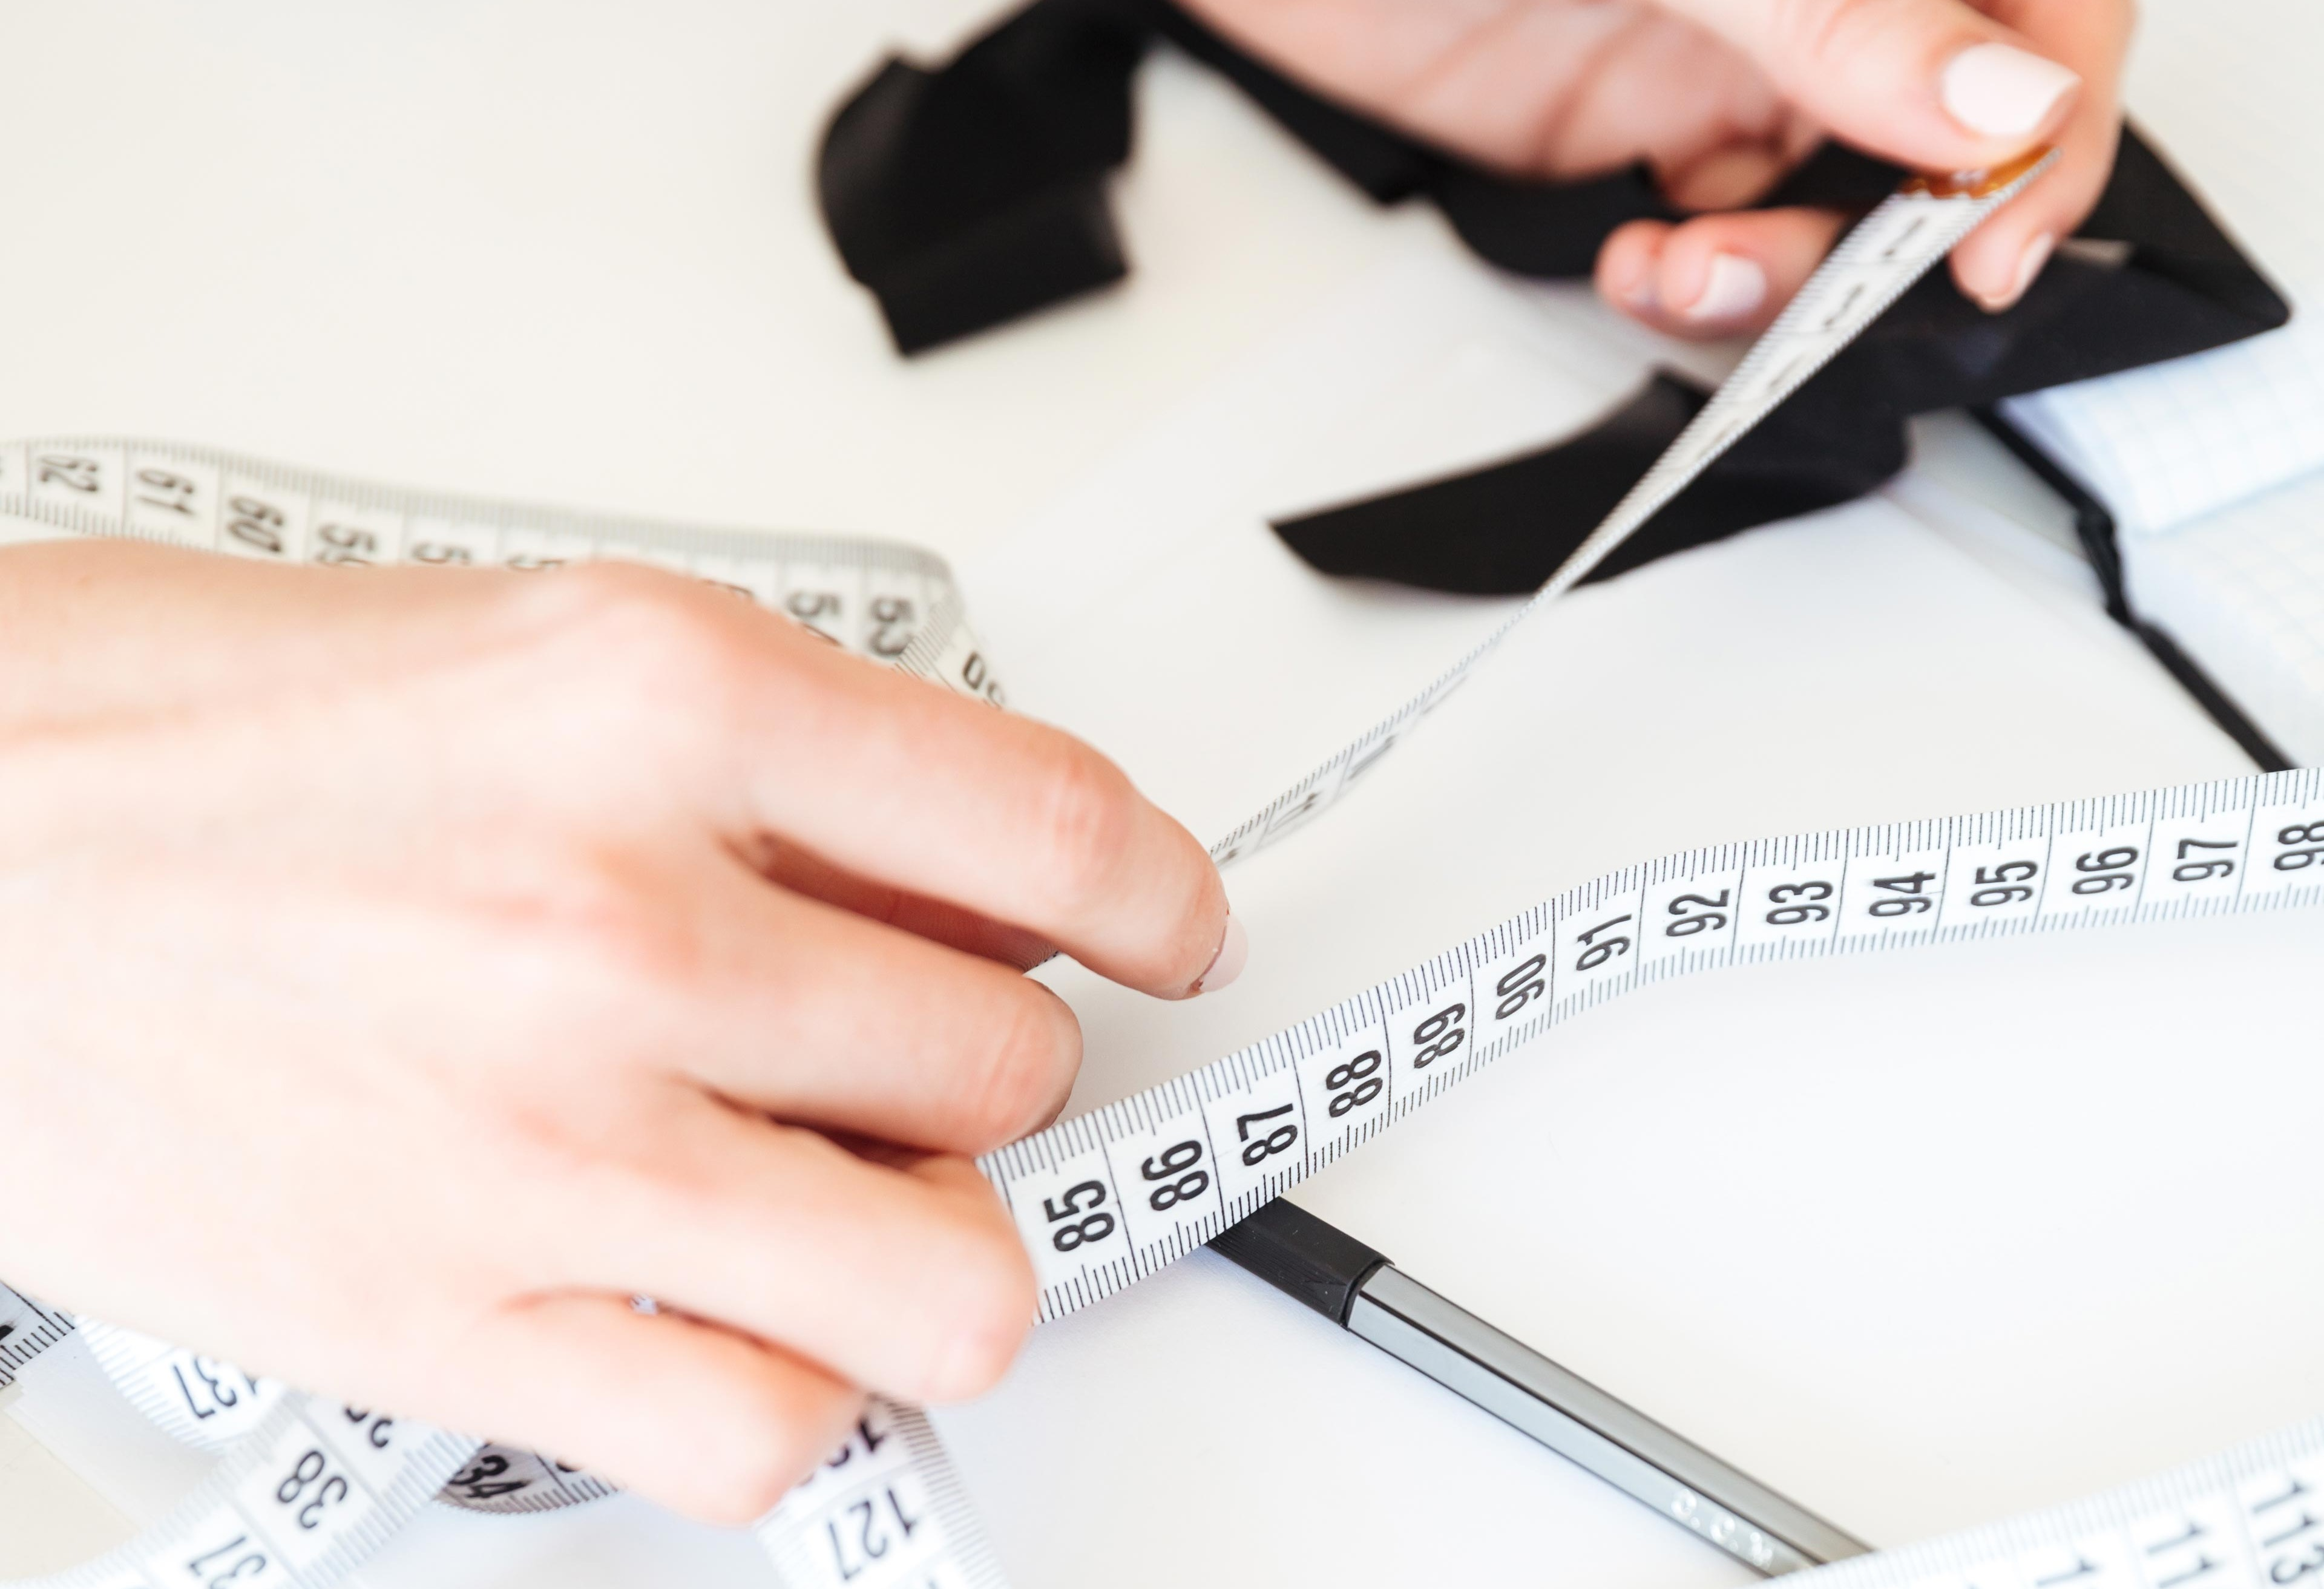 close-up-seamstress-working-with-measuring-tape